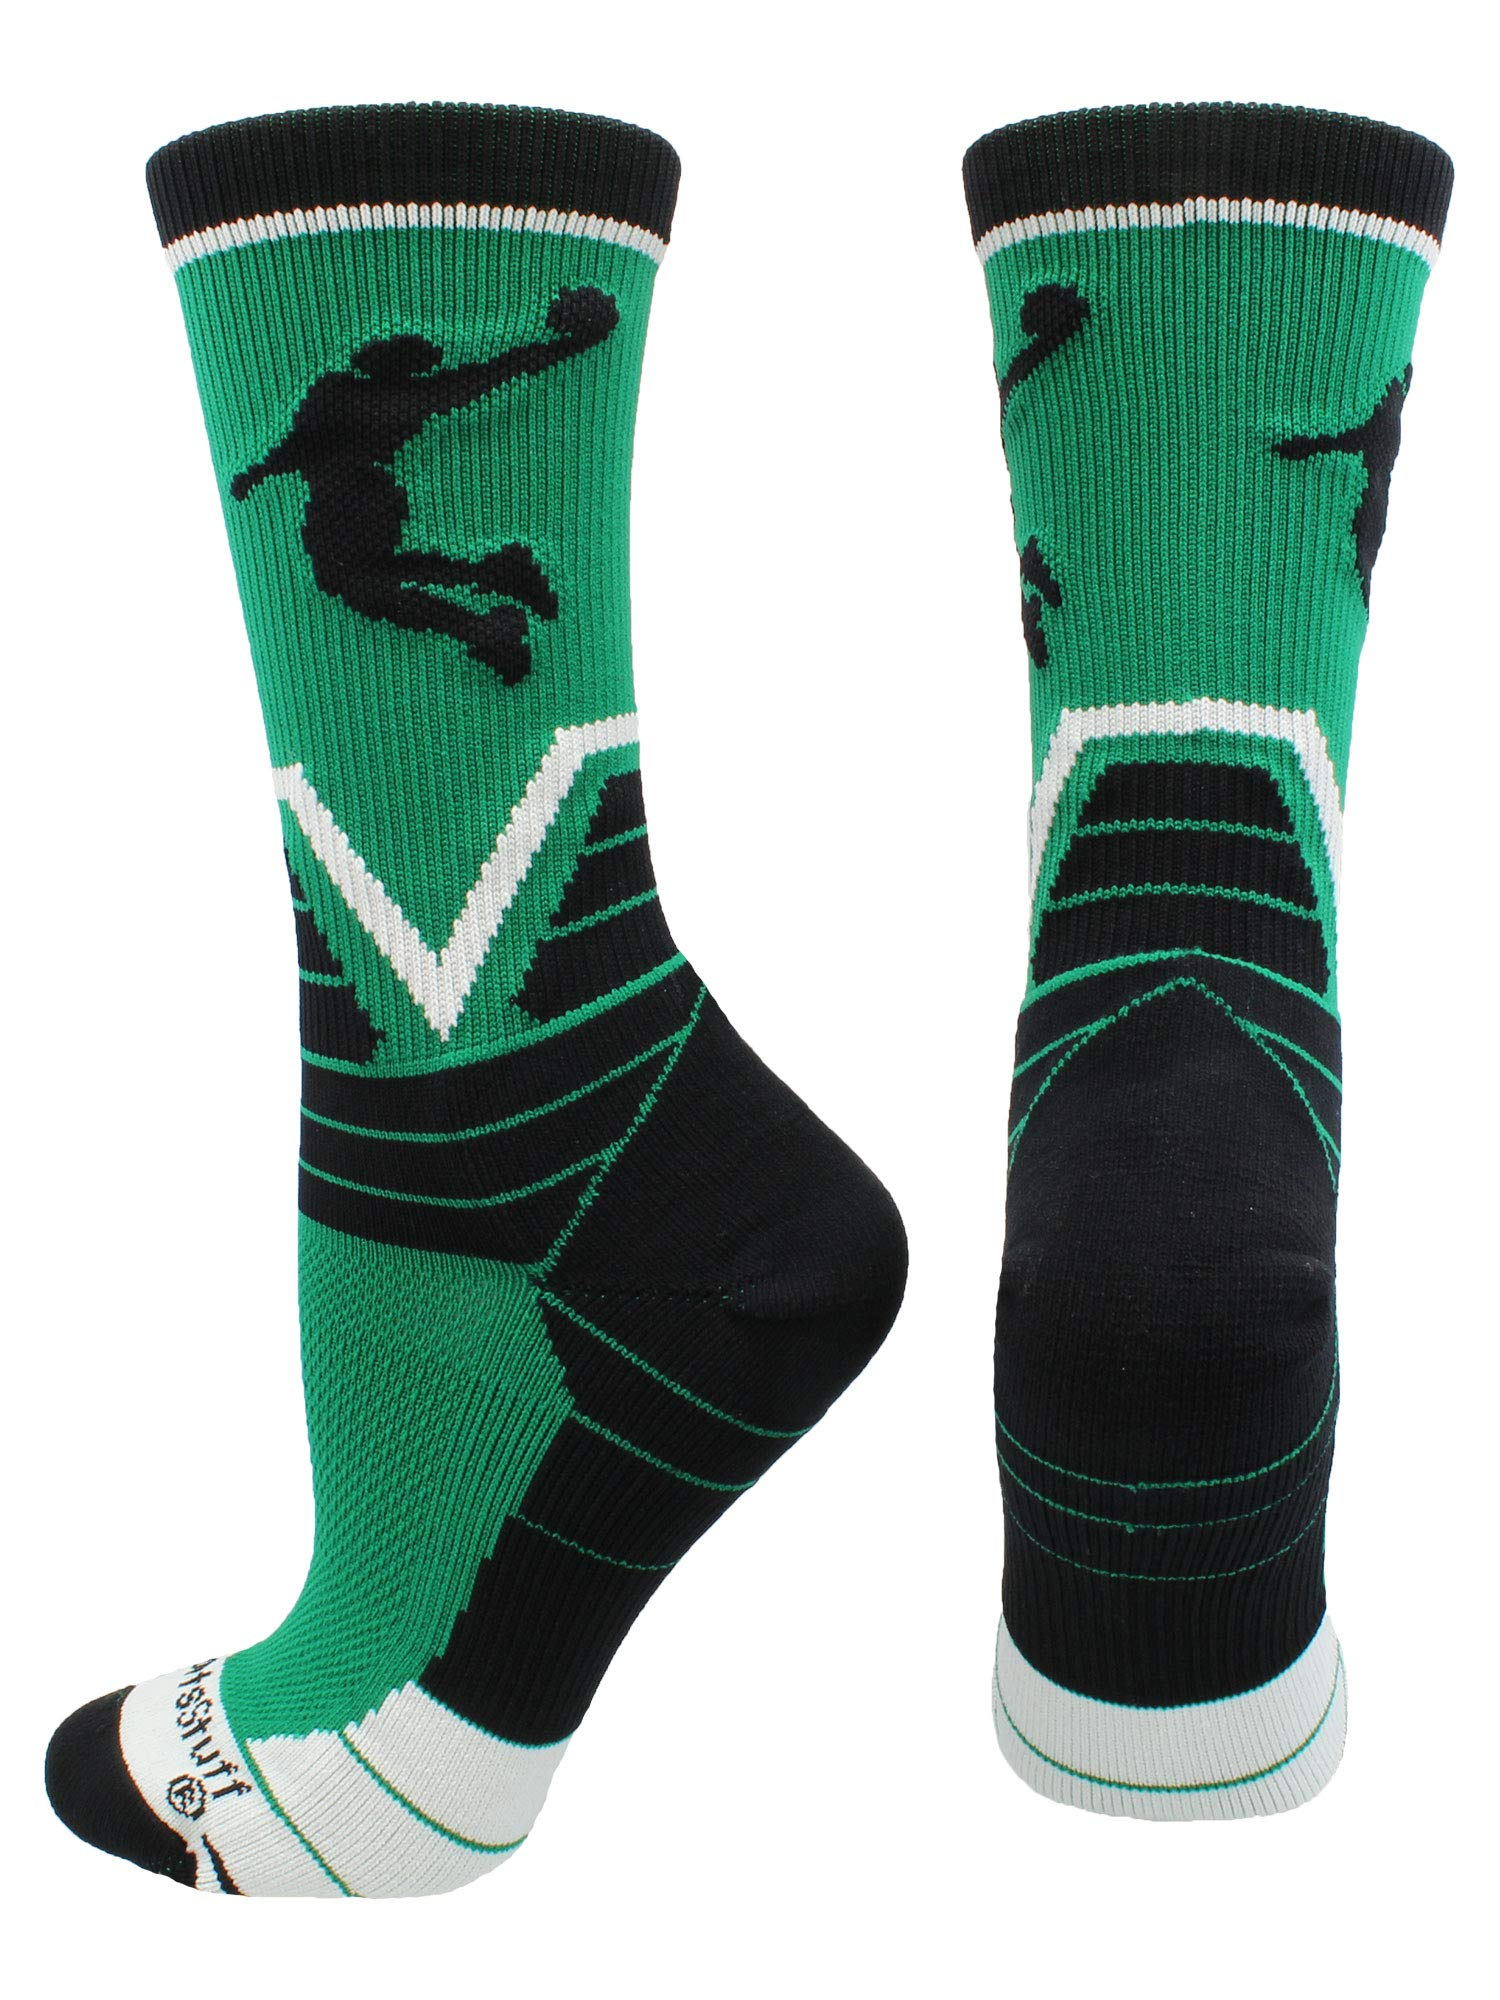 MadSportsStuff Basketball Player Victory Crew Socks (Kelly Green/Black/White, Large)